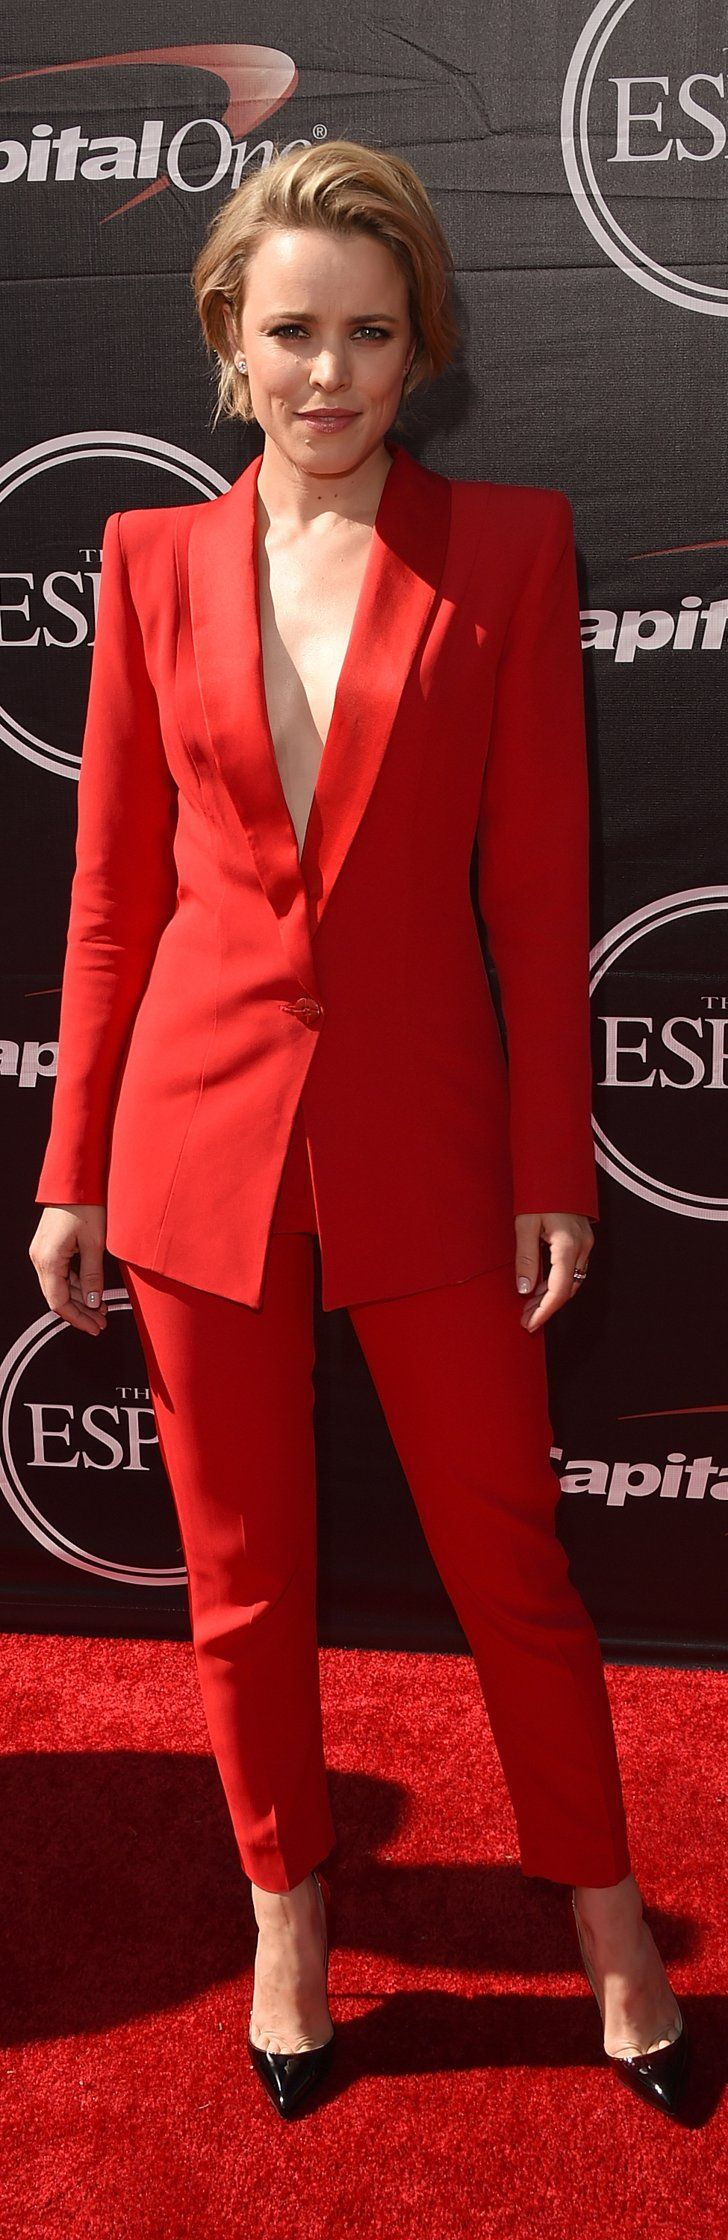 Pin for Later: The Stars at the ESPYs Were Definitely on Their Style Game